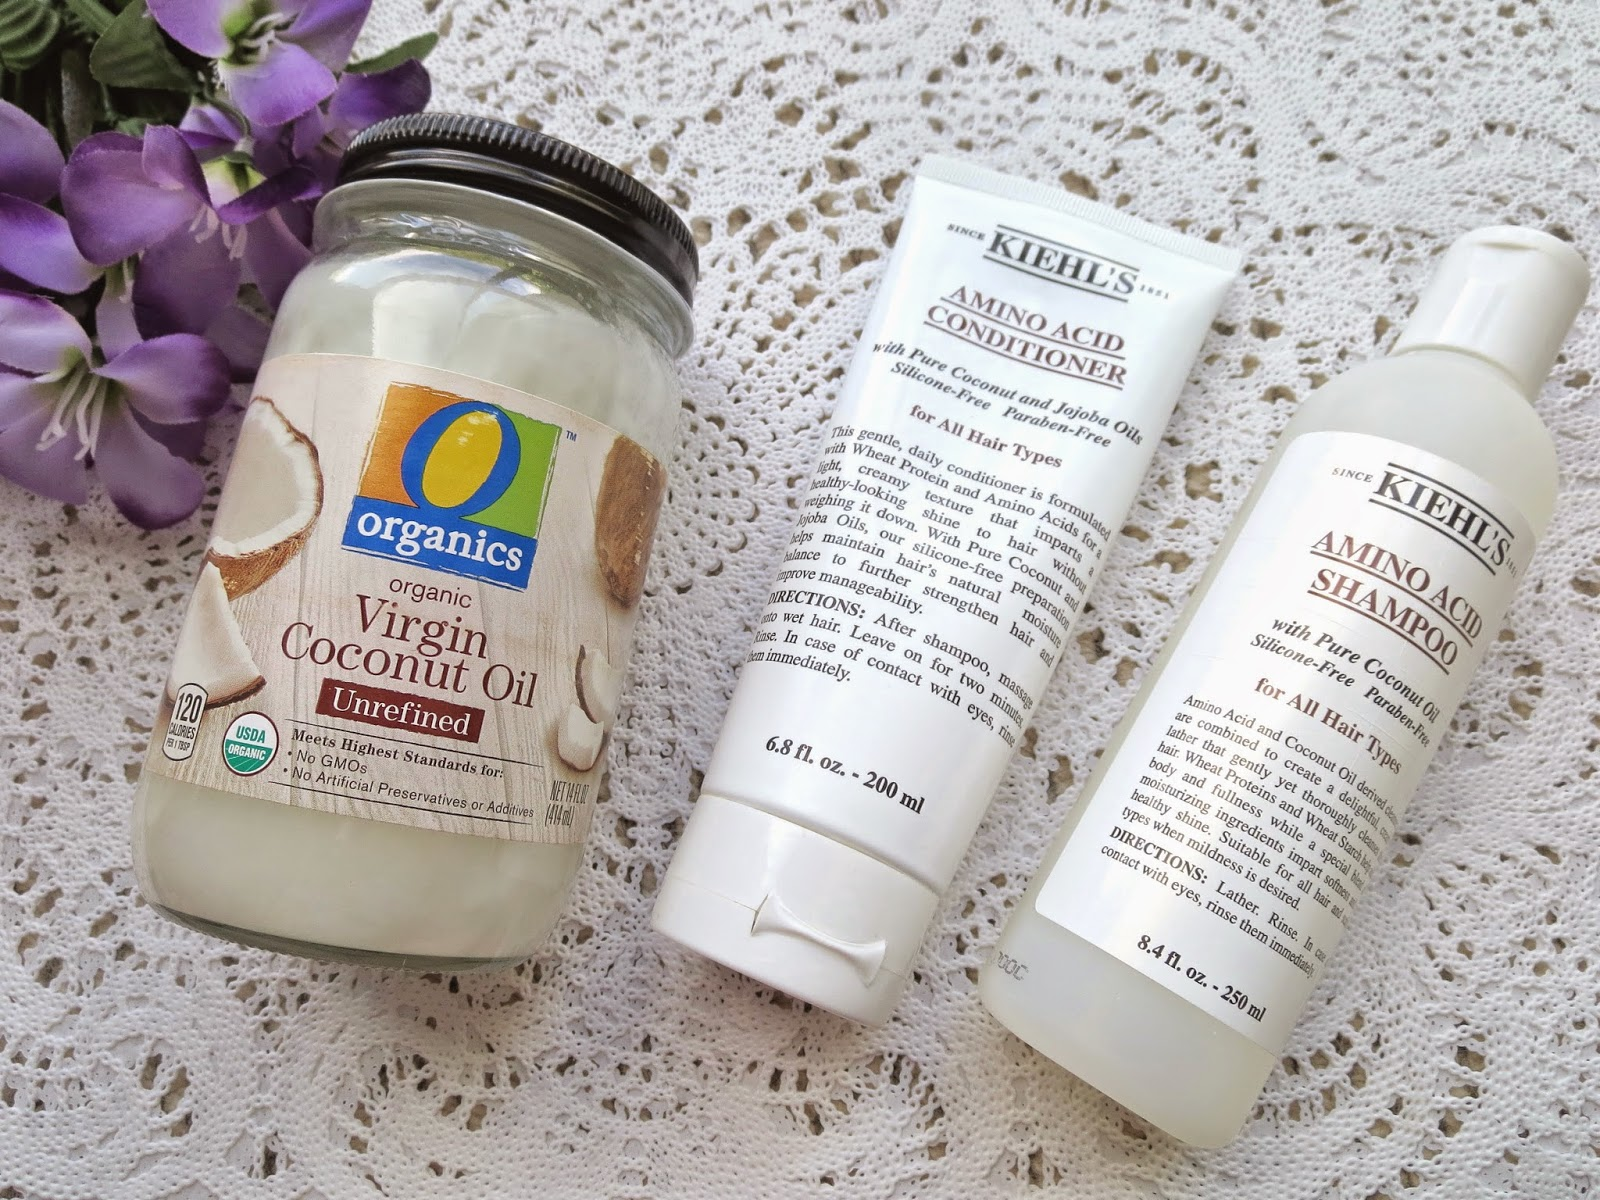 a picture of Coconut Oil, Kiehl's Amino Acid Shampoo & Conditionner